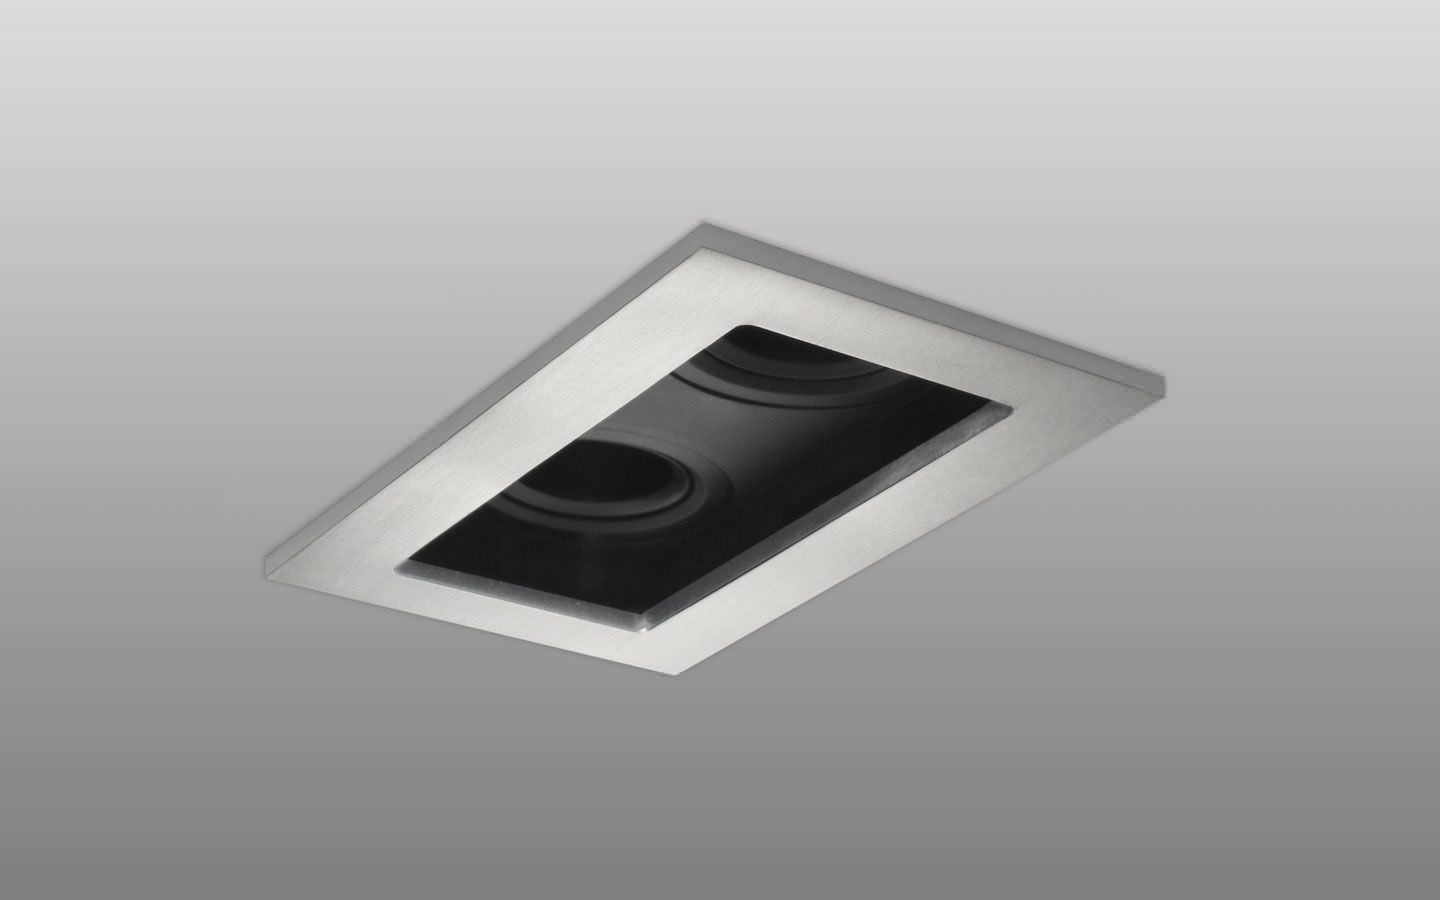 Recessed ceiling spotlight / indoor / halogen / LED - TWIN SQUARE ... for Ceiling Spot Light Square  113cpg